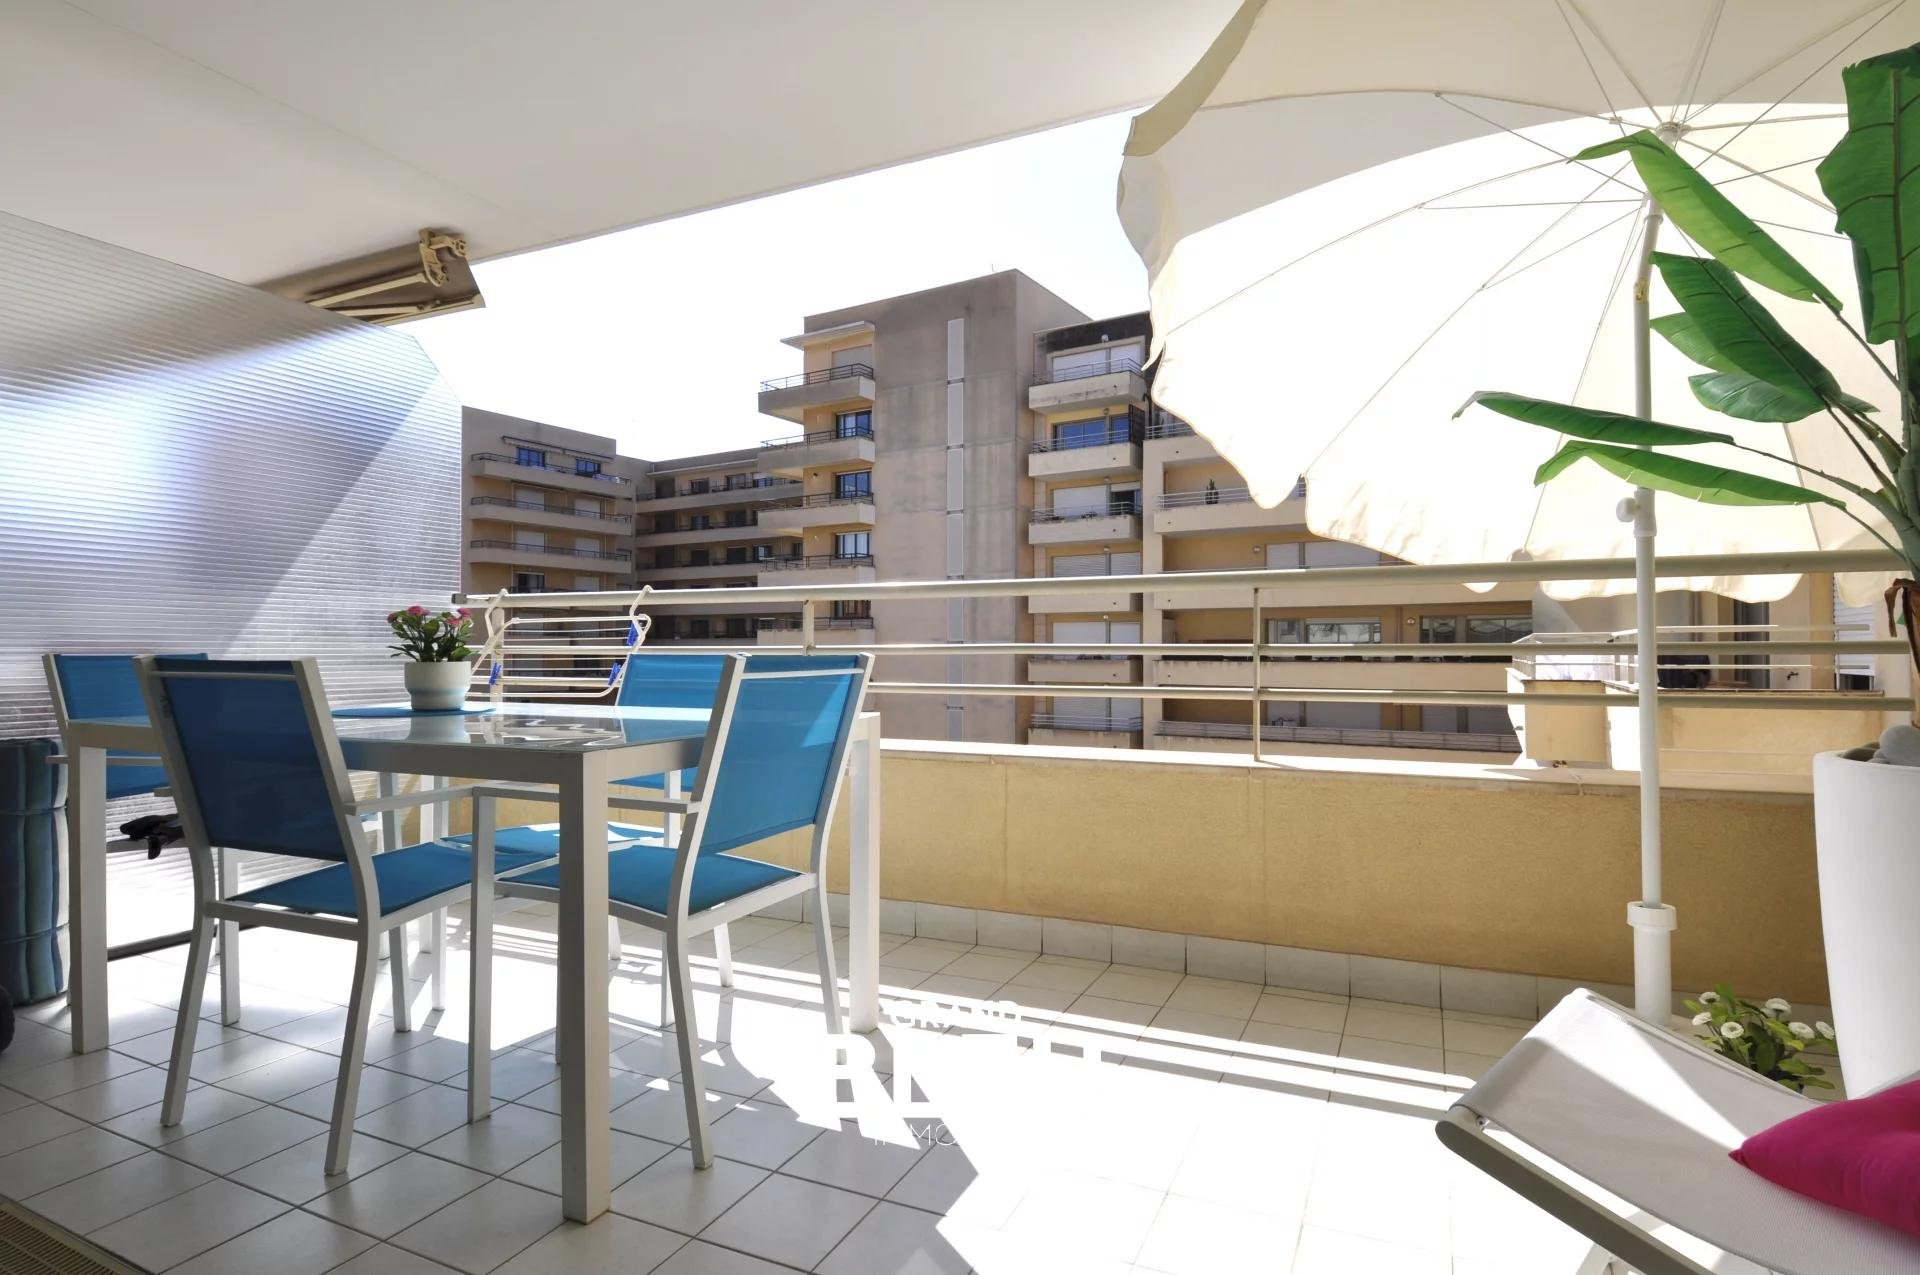 Quiet, luxury, security, south facing terrace, green view